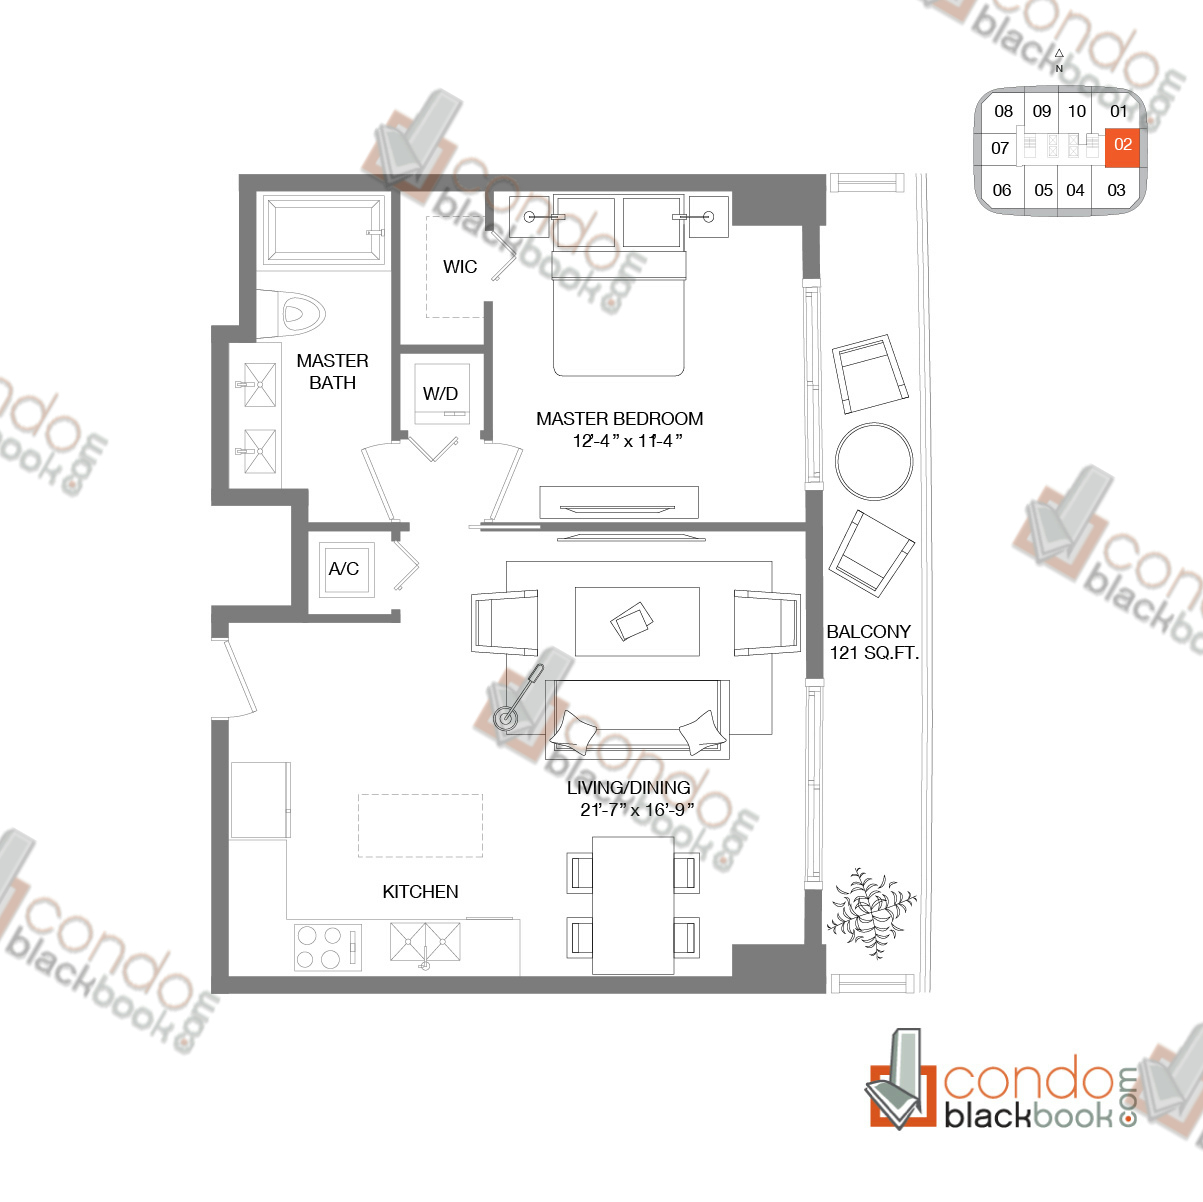 Floor plan for Brickell Heights West Tower Brickell Miami, model RESIDENCE 02, line 02, 1/1 bedrooms, 682 sq ft